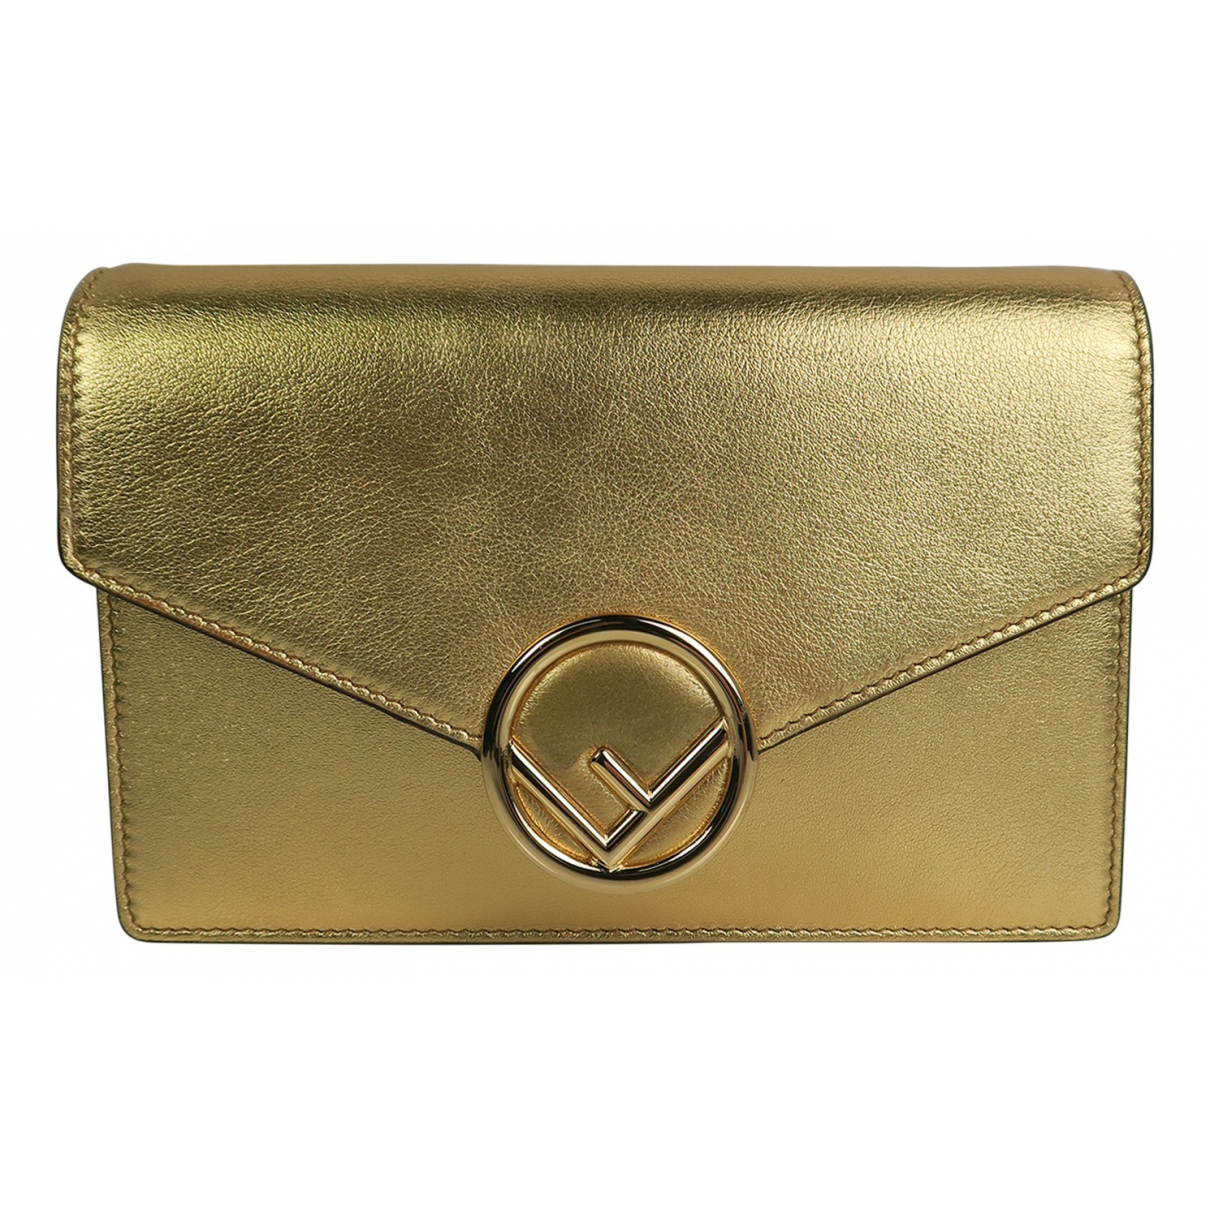 Fendi Kan I logo Gold Leather Clutch bag for Women N